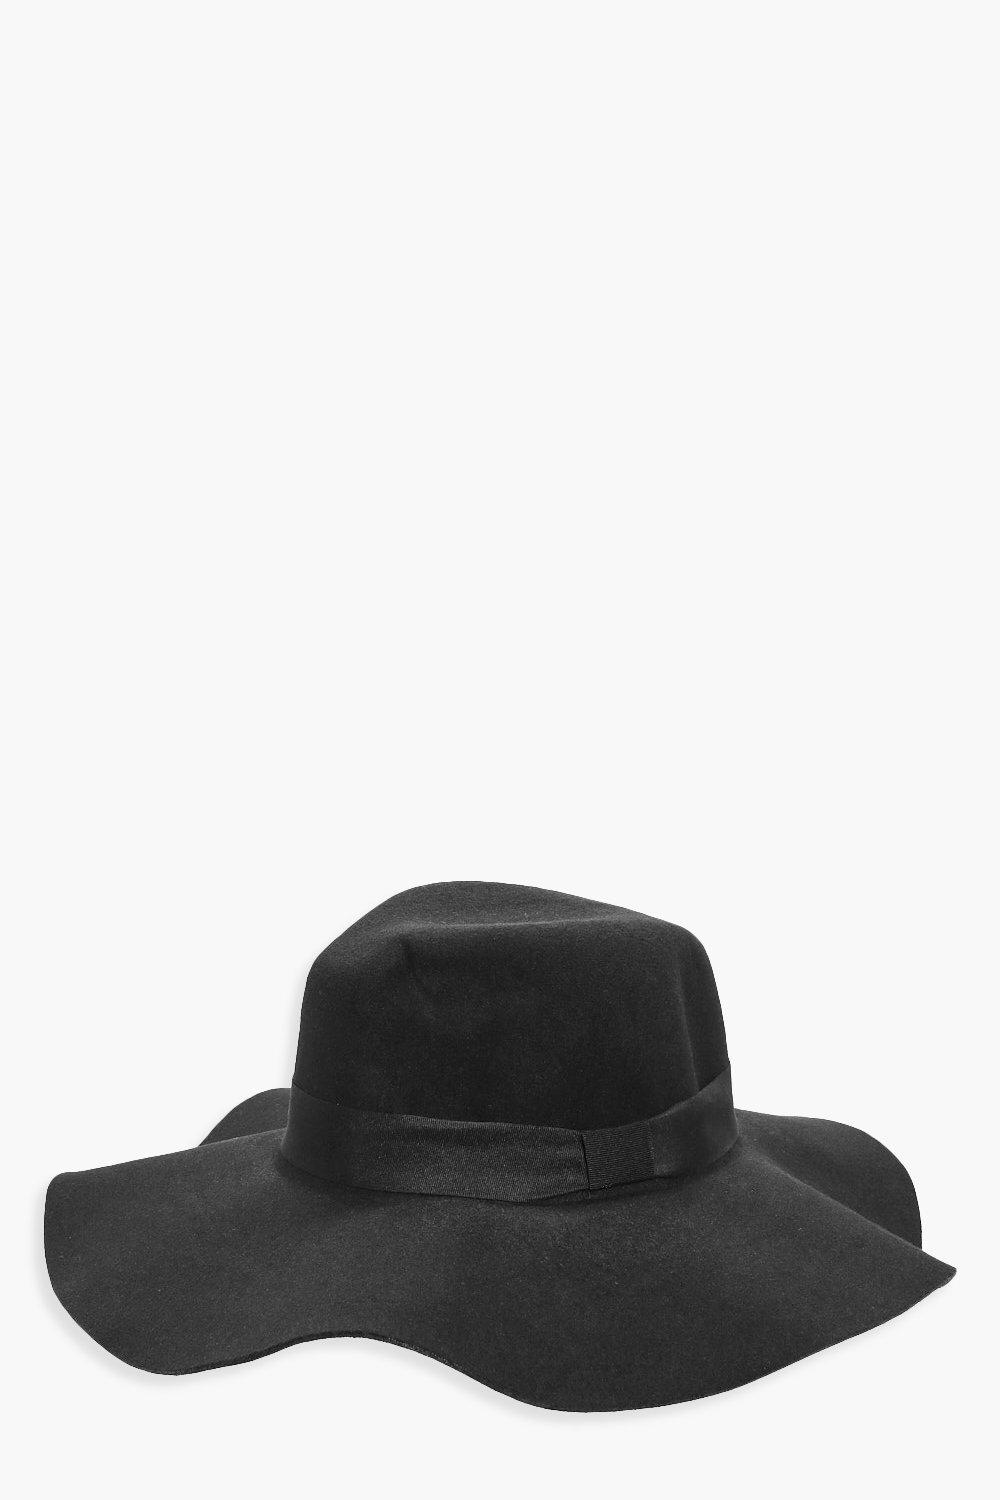 Felt Floppy Hat - black - Freya Felt Floppy Hat -